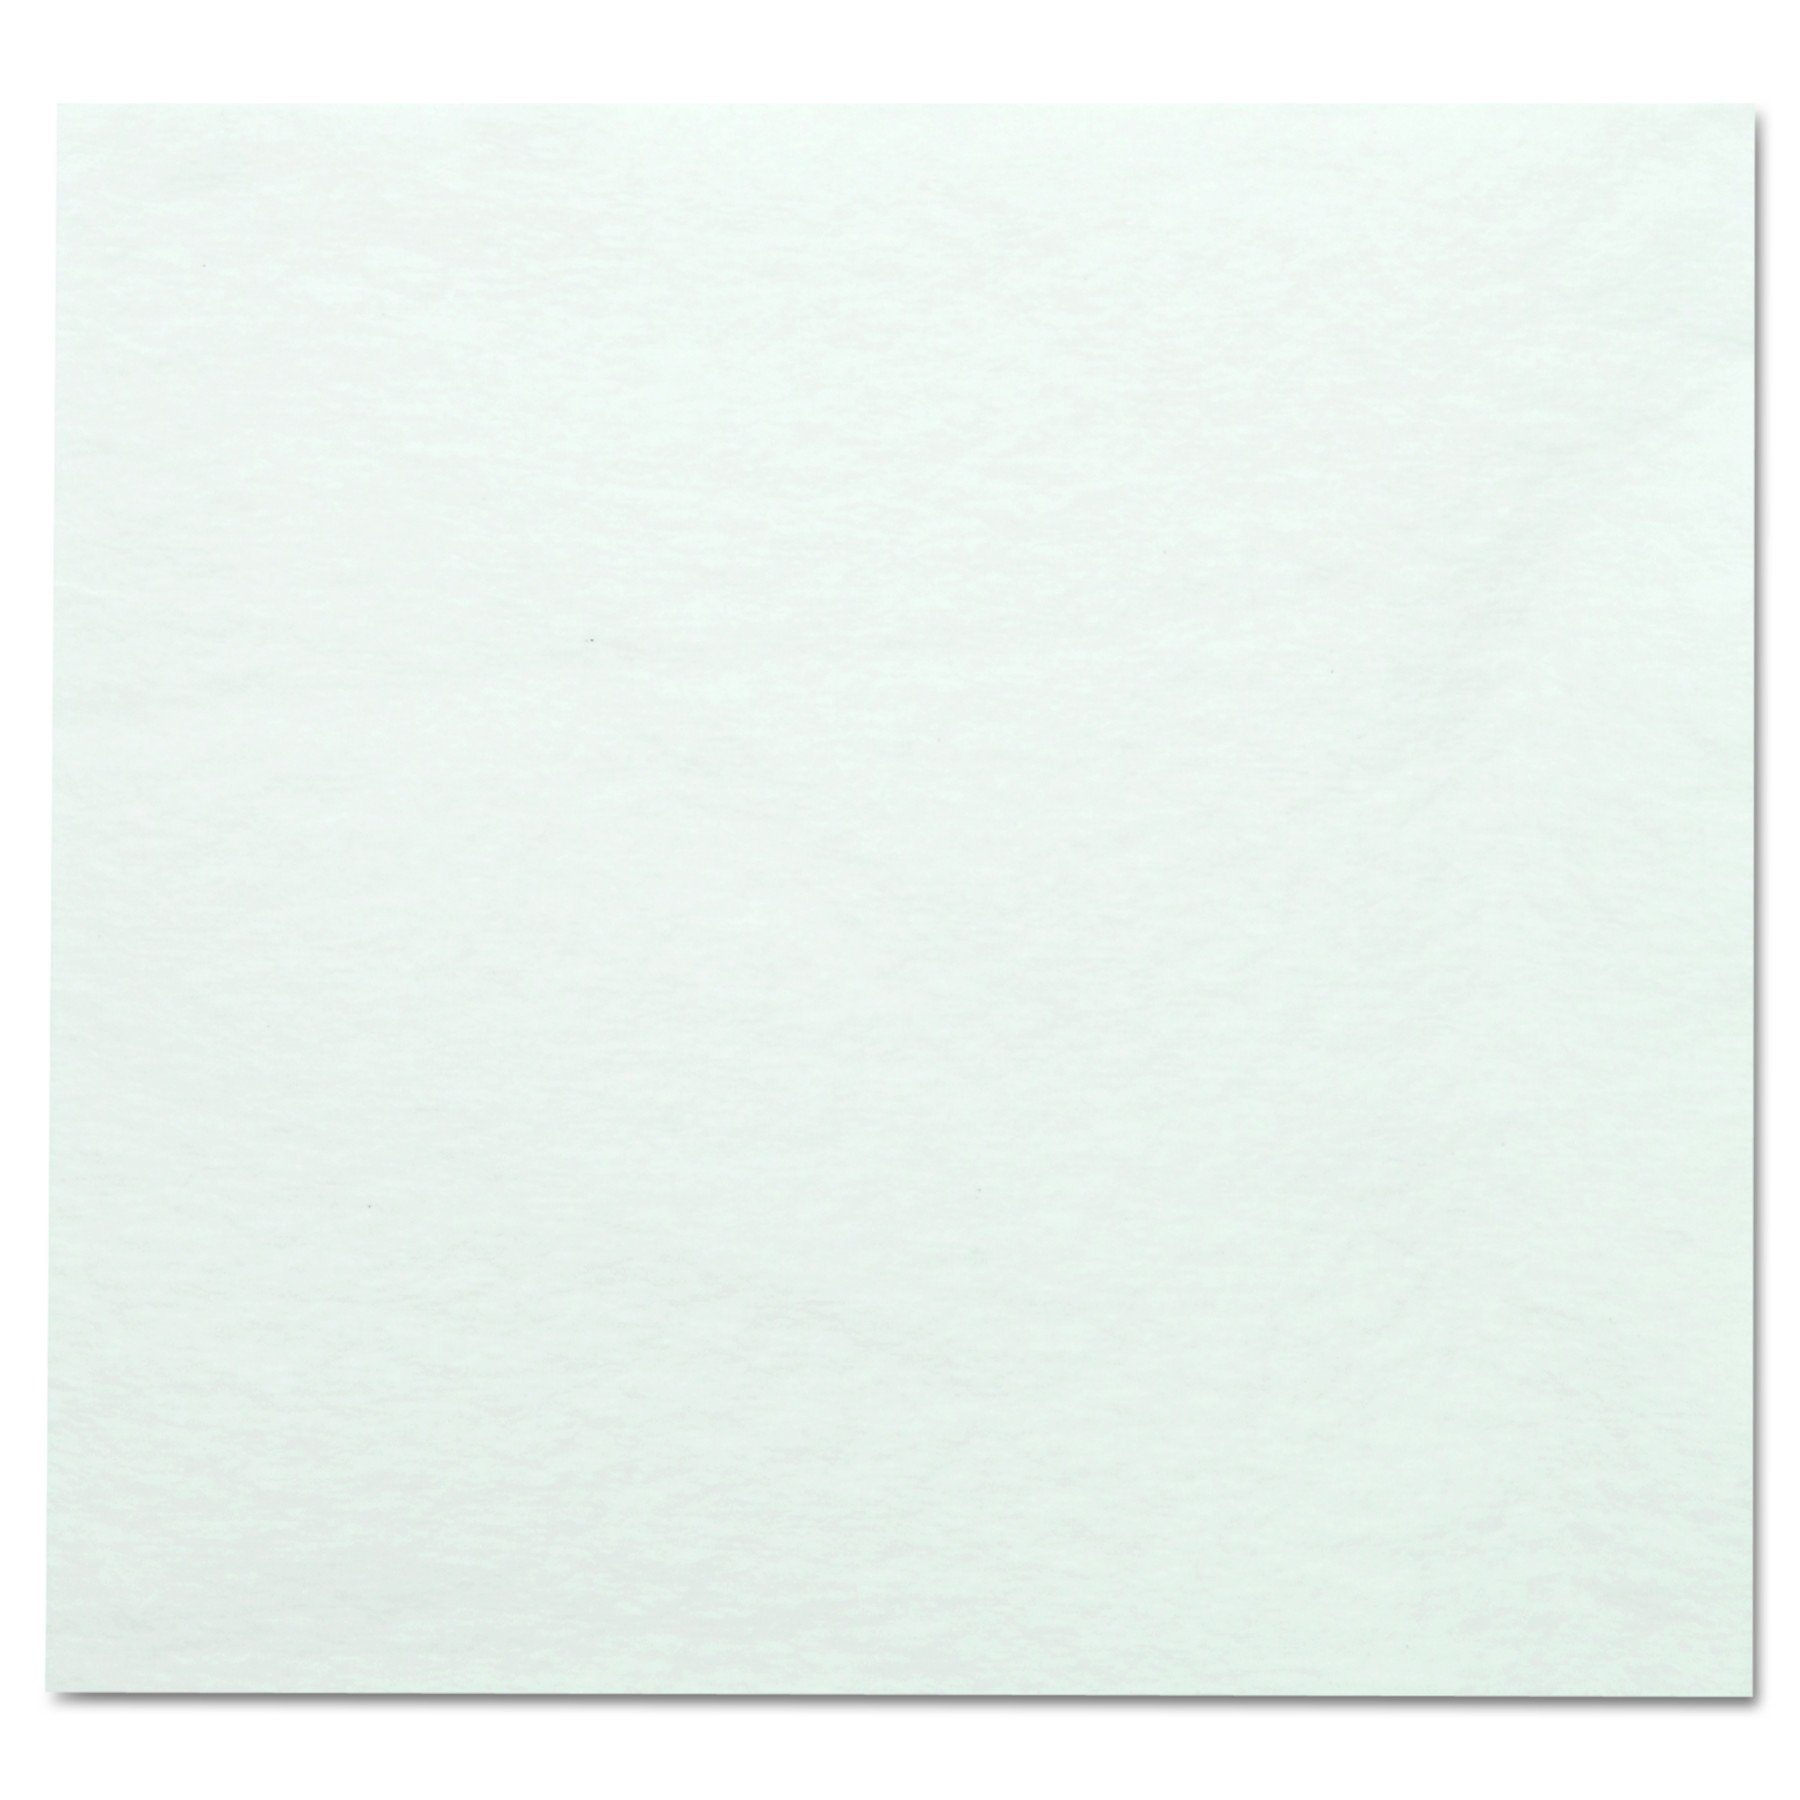 Chix 9036 Chicopee Double Recreped Industrial Towel, 12 1/4 x 13 1/4, White (Case of 1000)